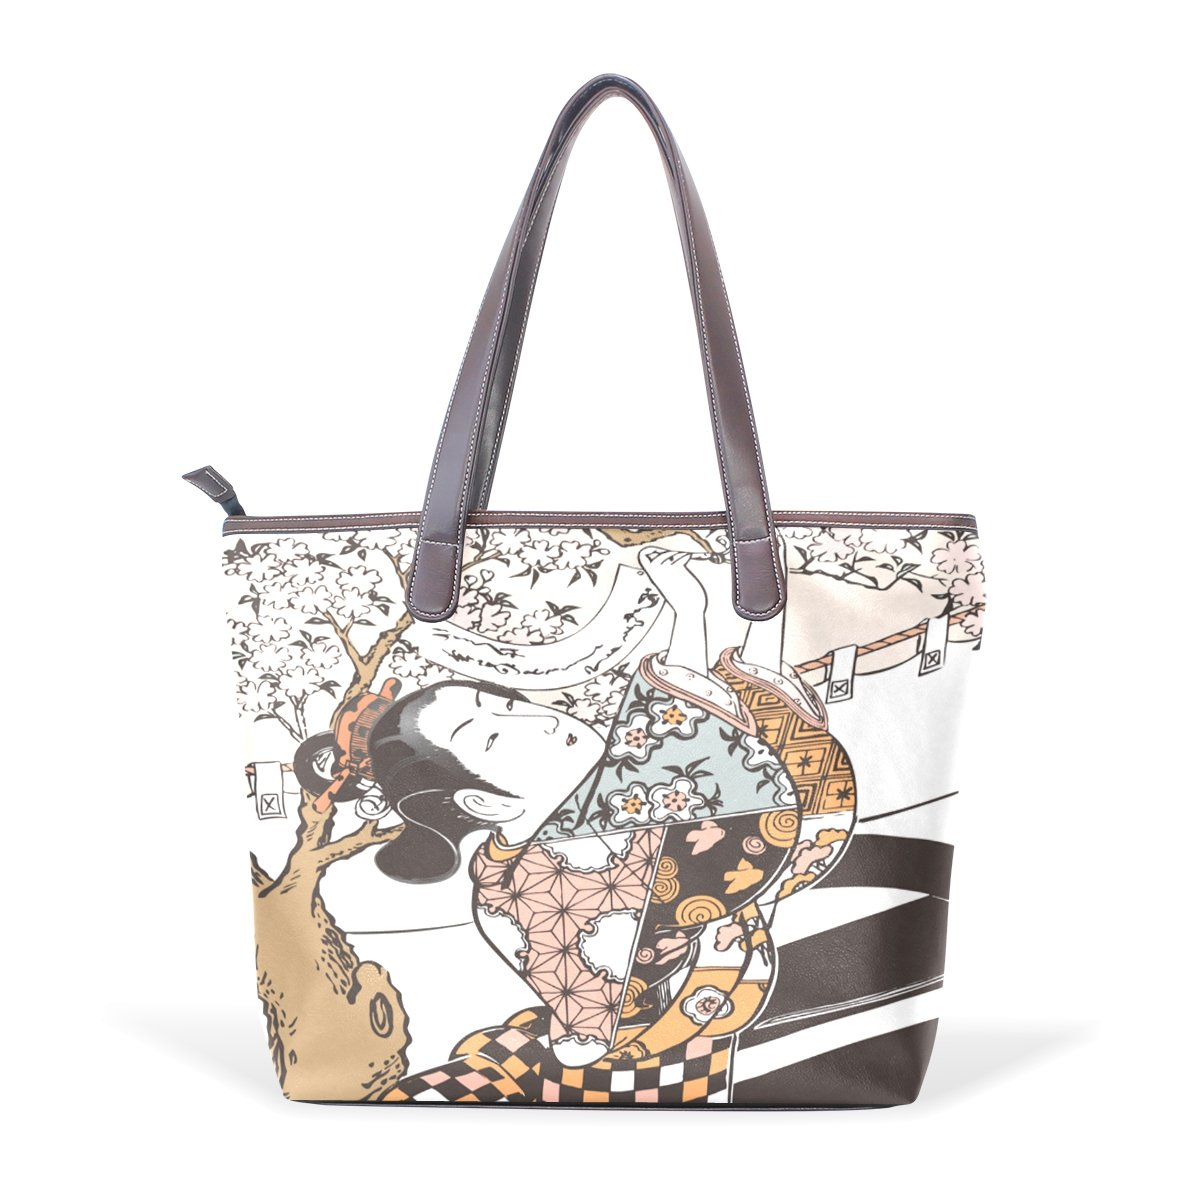 Ukiyoe Ukiyo-E Print Japanese Art Womens Fashion Large Shoulder Bag Handbag Tote Purse for Lady